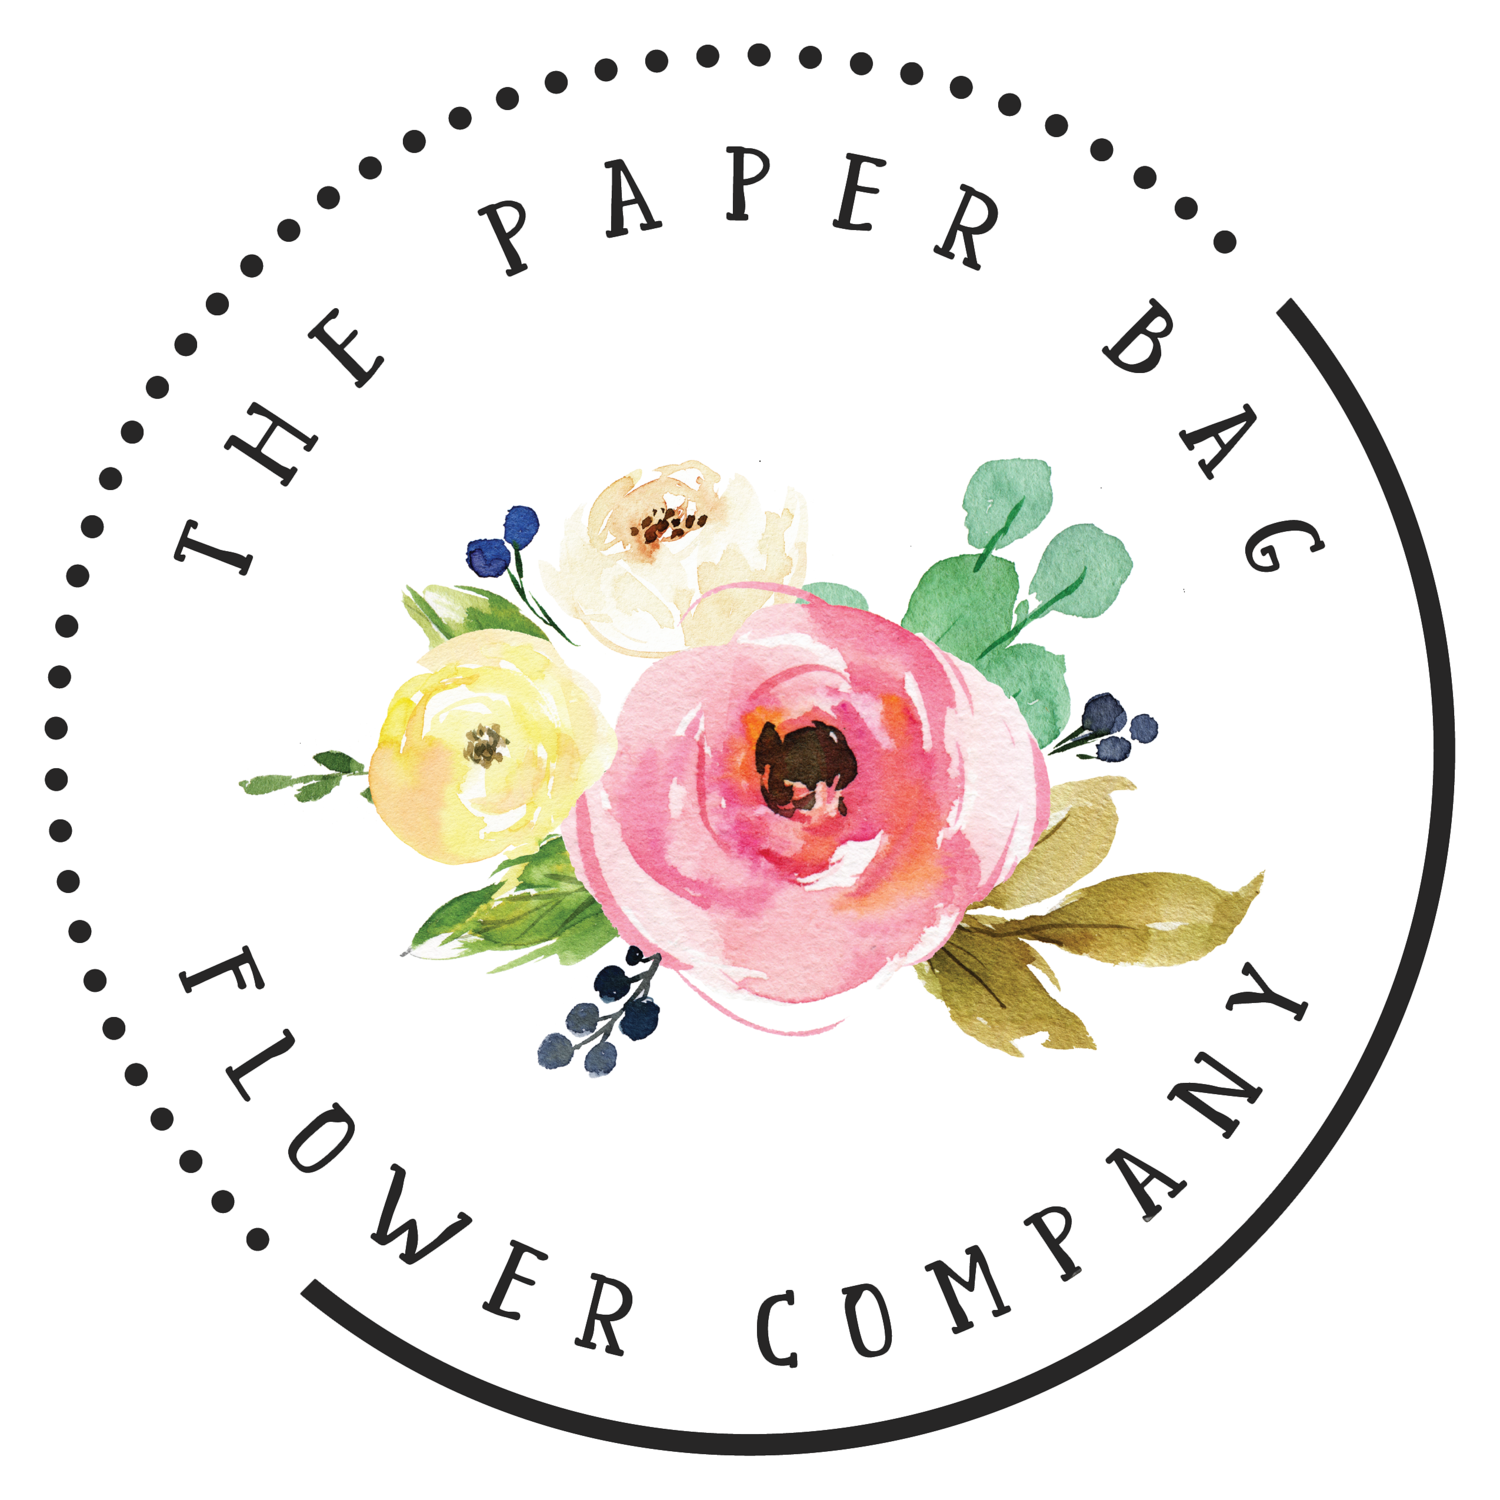 The Paper Bag Flower Company